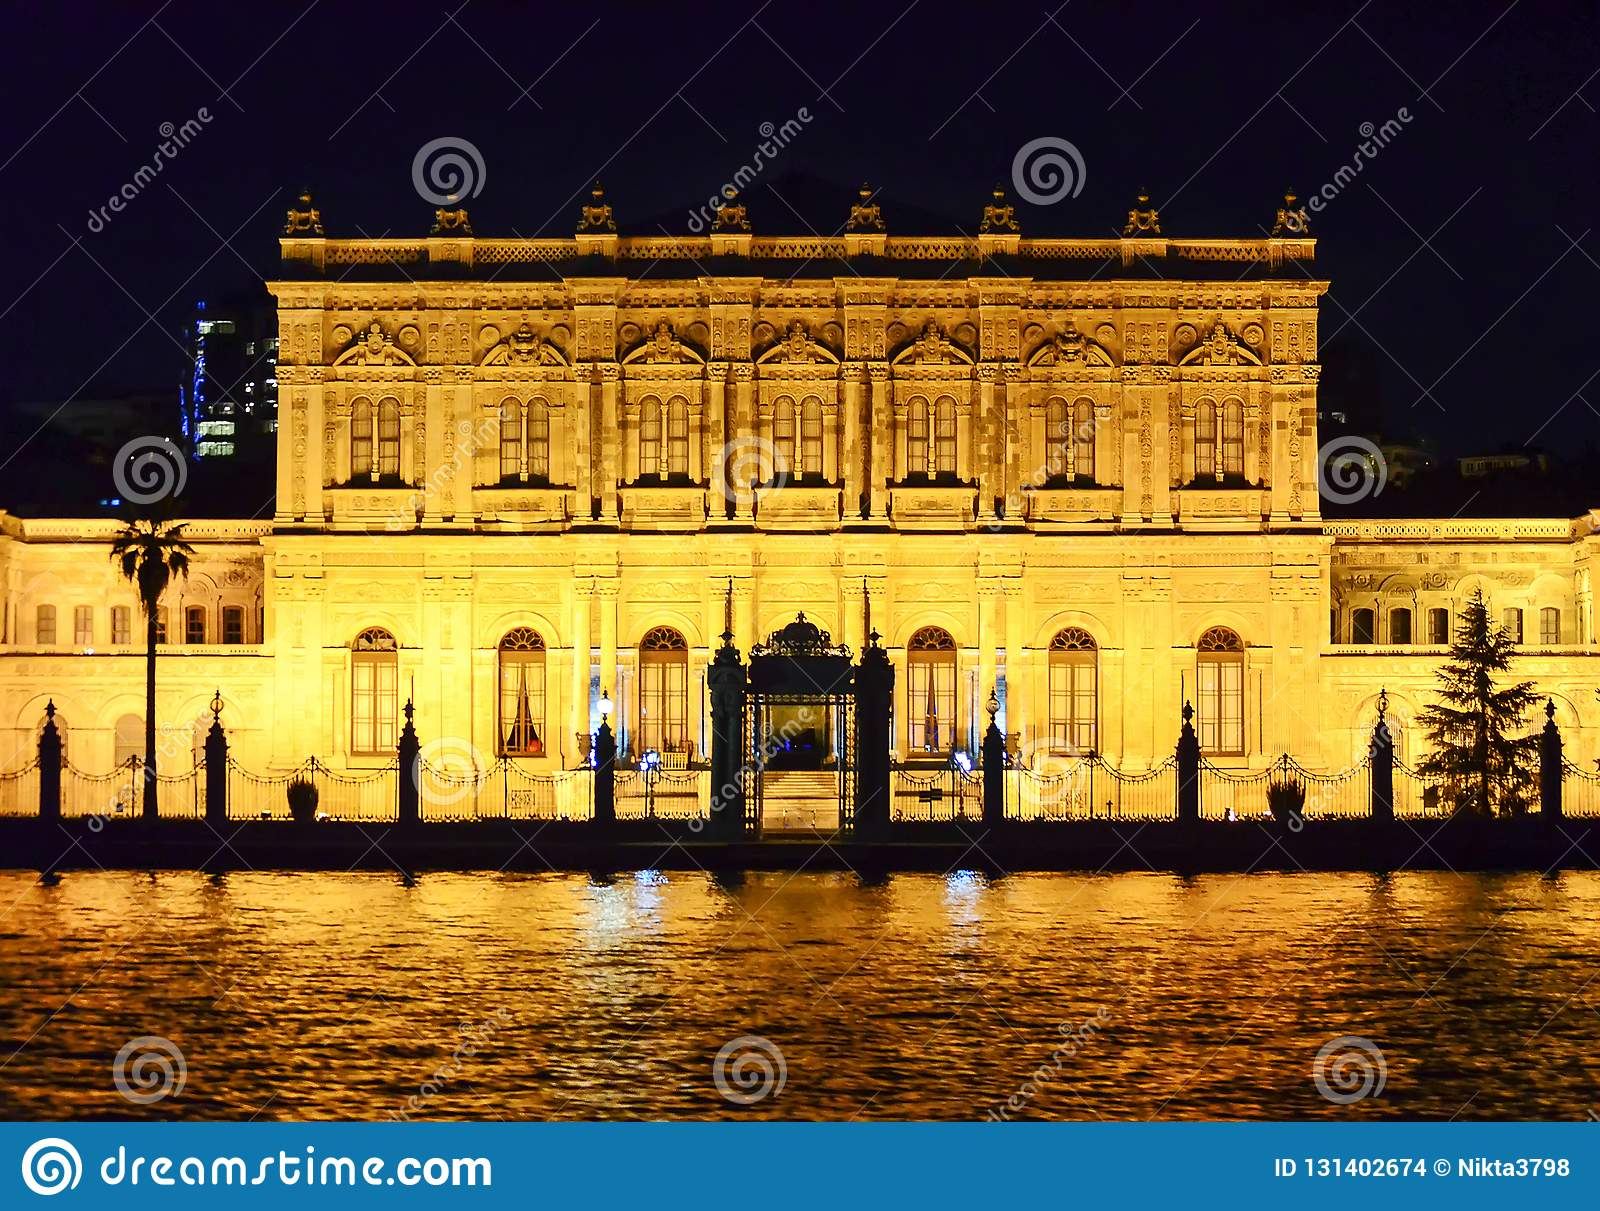 Istanbul, TURKEY September 19 - 2018. Dolmabahce palace seen from the water at night